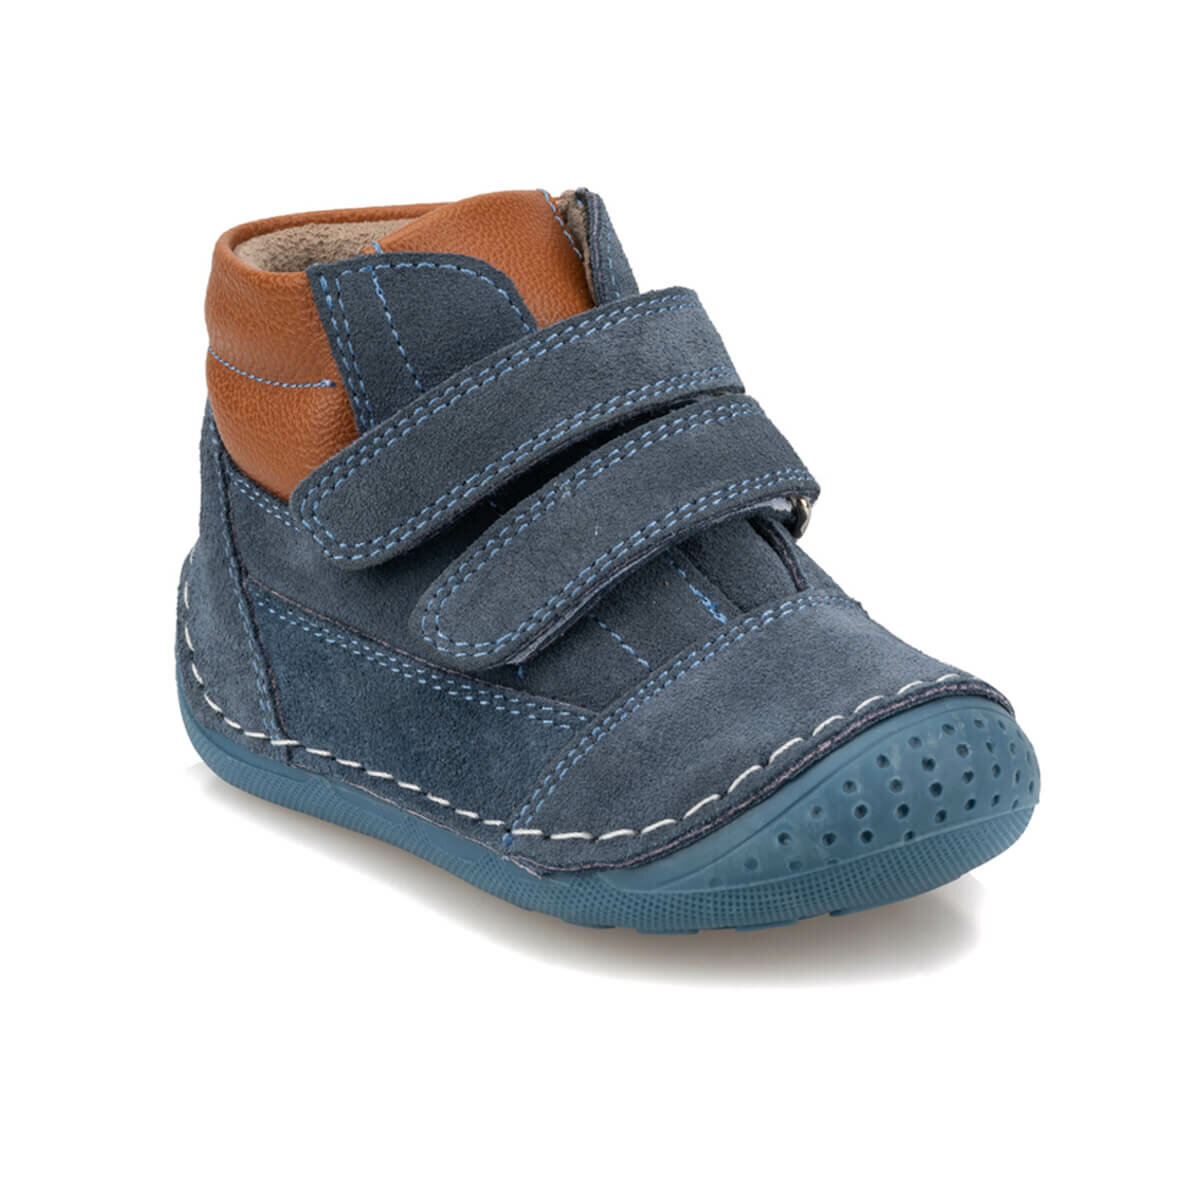 FLO 92.511709.I Blue Male Child Boots Polaris